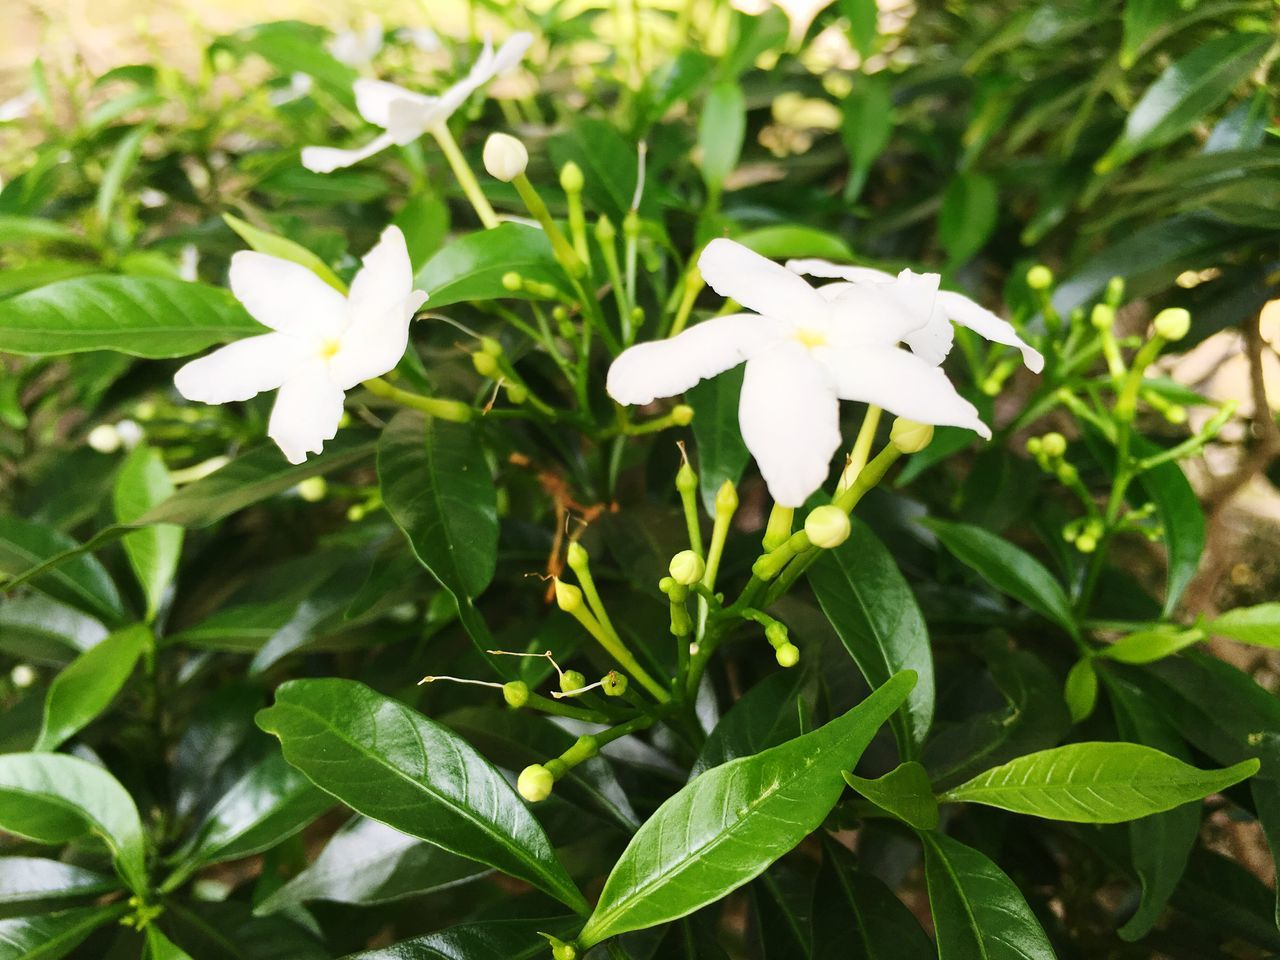 flower, leaf, growth, plant, petal, nature, fragility, white color, freshness, green color, beauty in nature, day, no people, blooming, outdoors, flower head, close-up, periwinkle